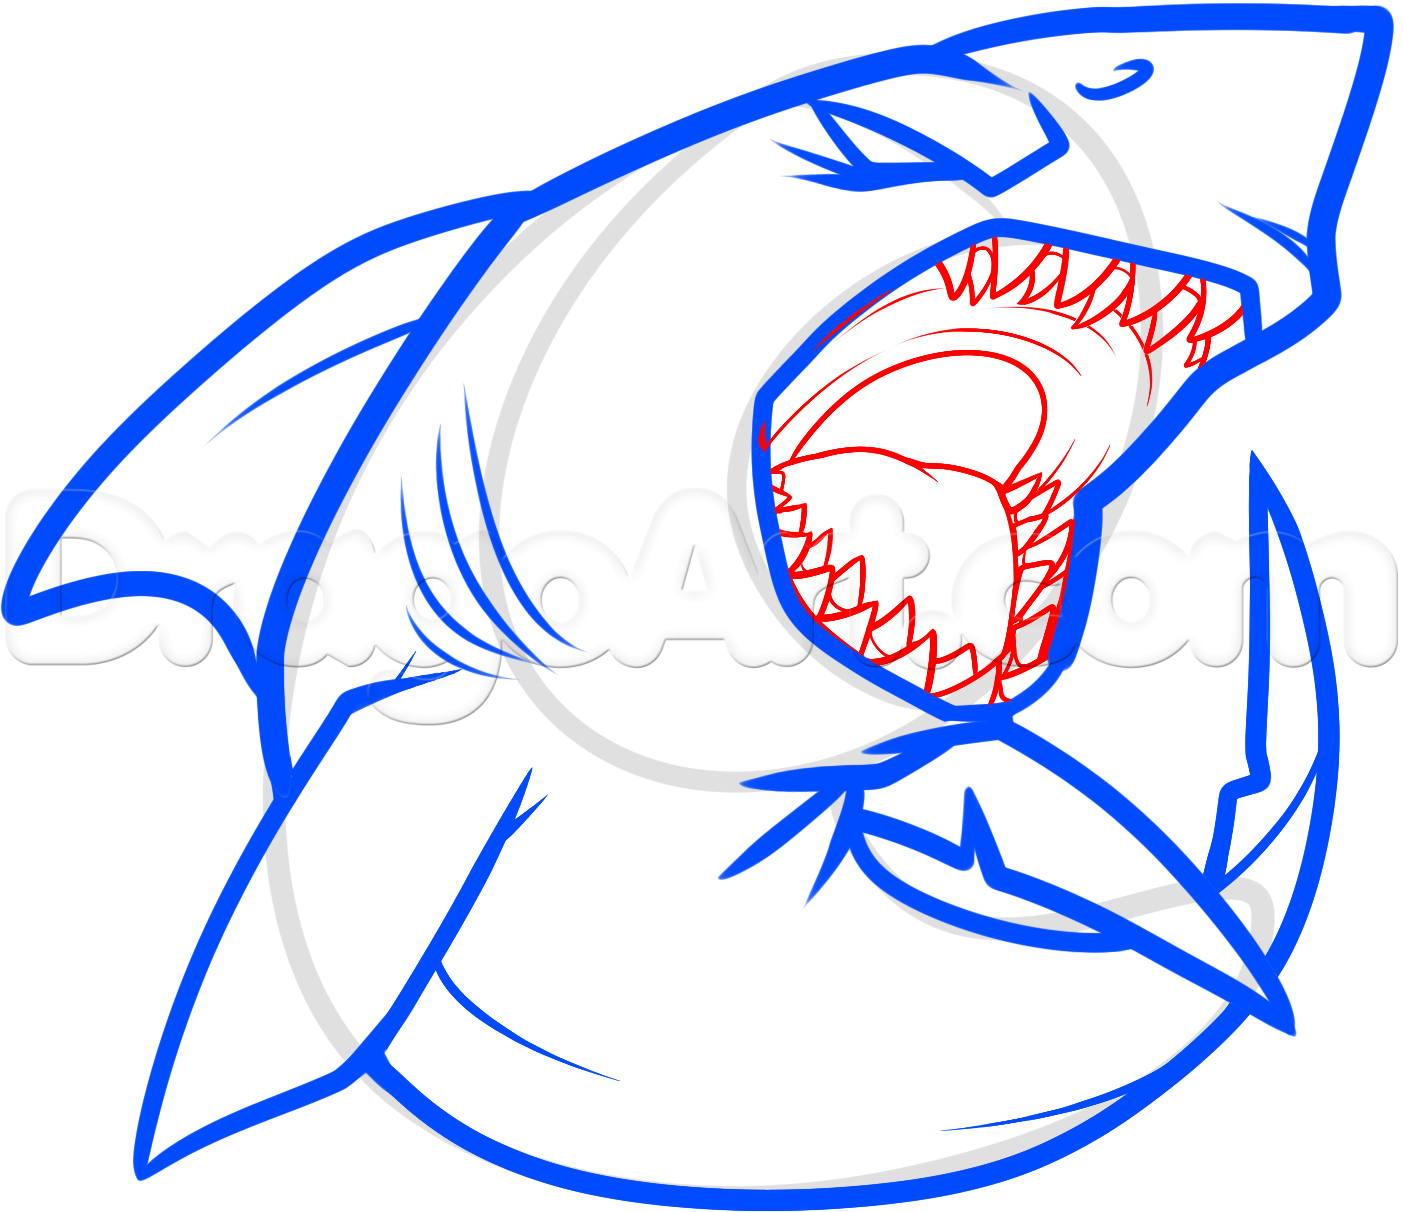 Shark Pictures Drawing | Free download best Shark Pictures Drawing